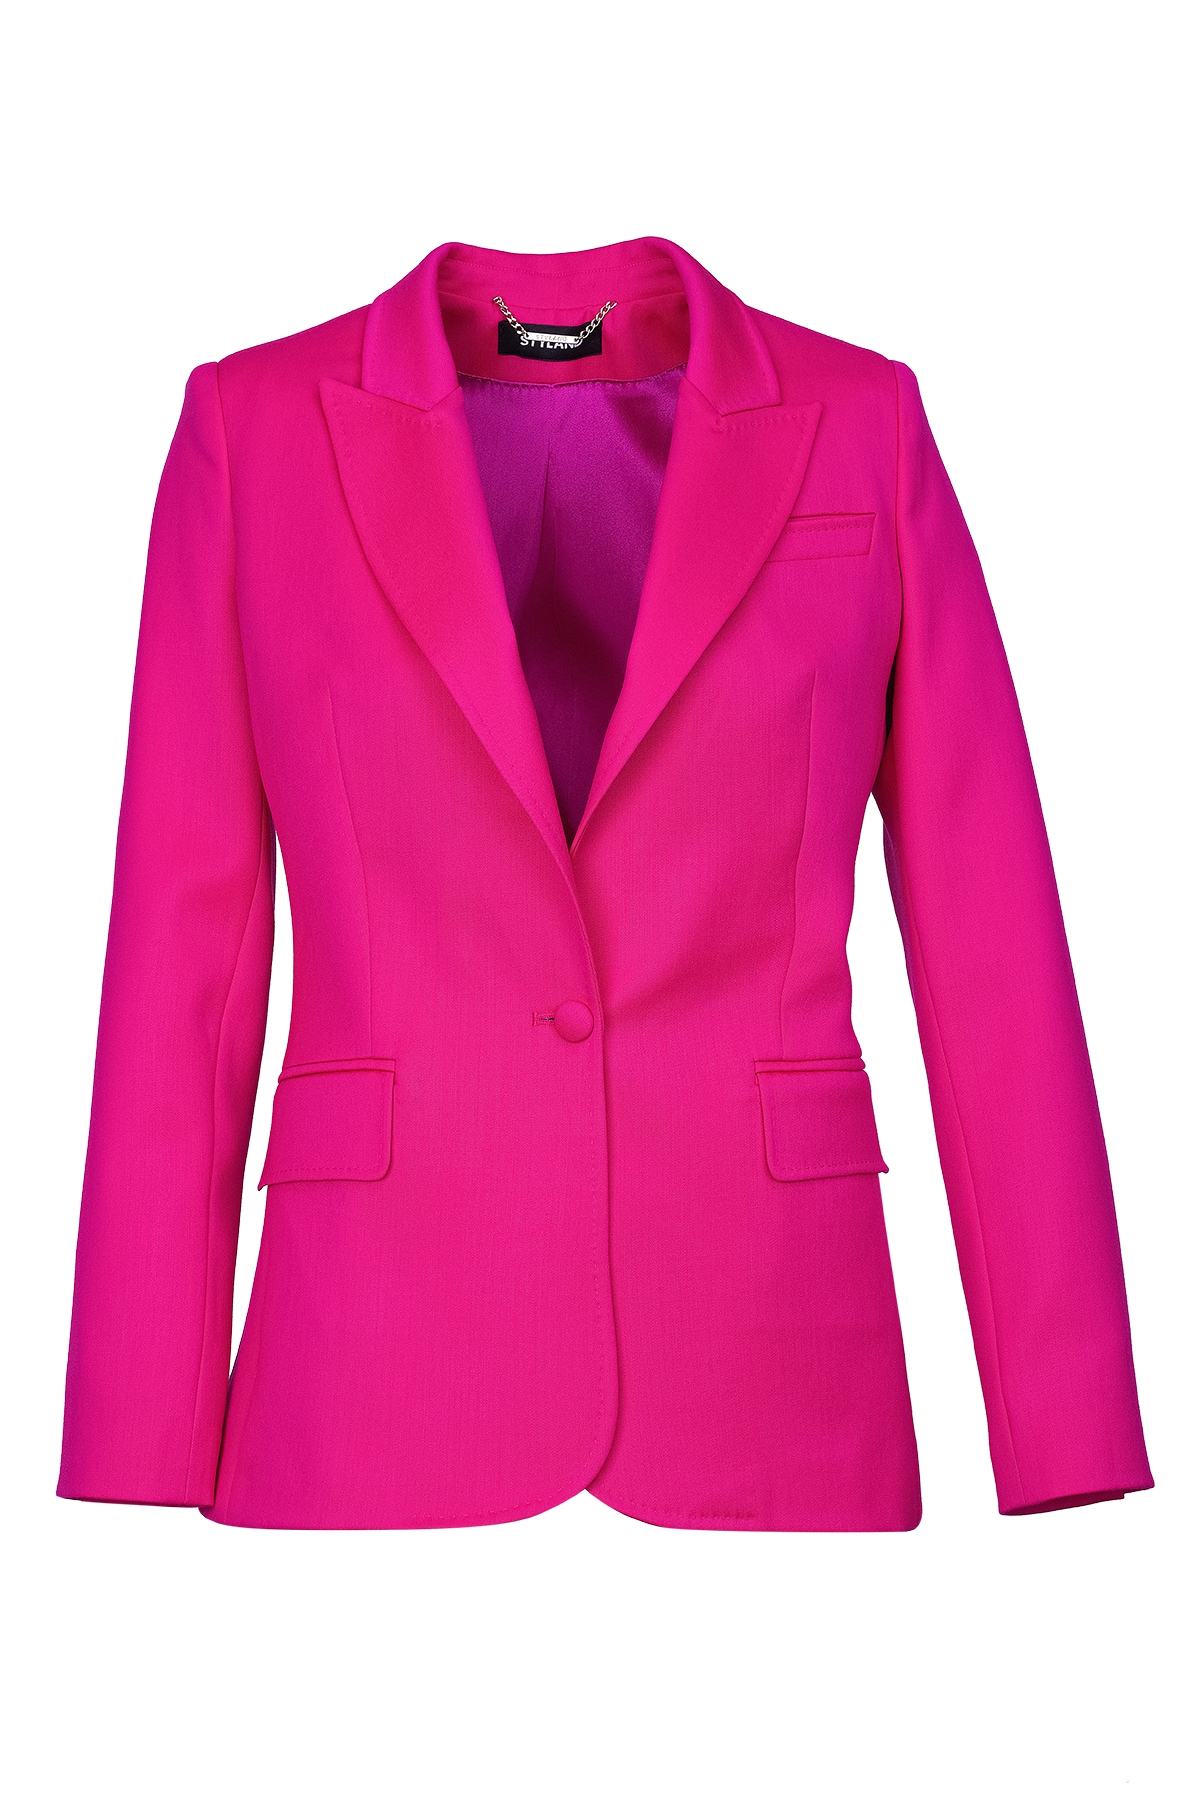 HOT PINK TAILORED JACKET